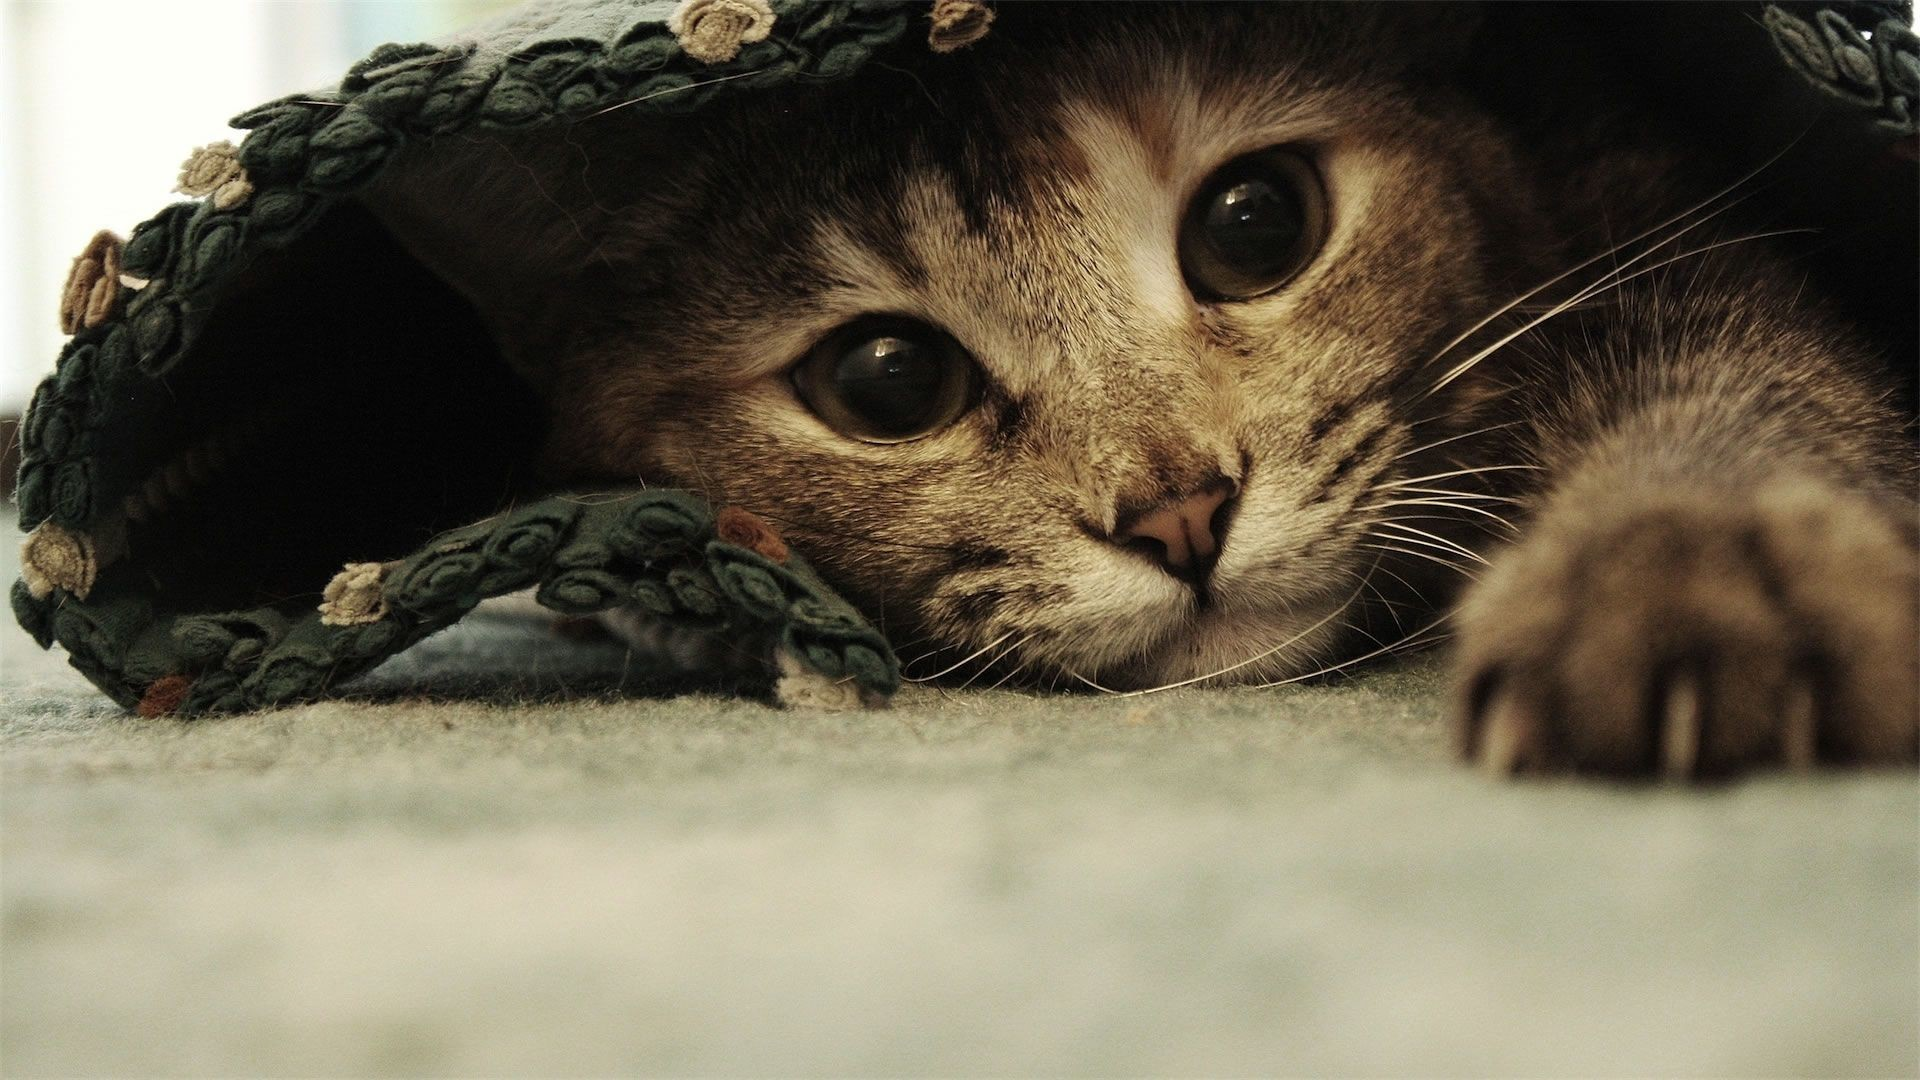 Res: 1920x1080, funny pictures | Funny Cats Wallpapers 20 |HD Wallpapers Fan | Full HD  Wallpapers 1080p .